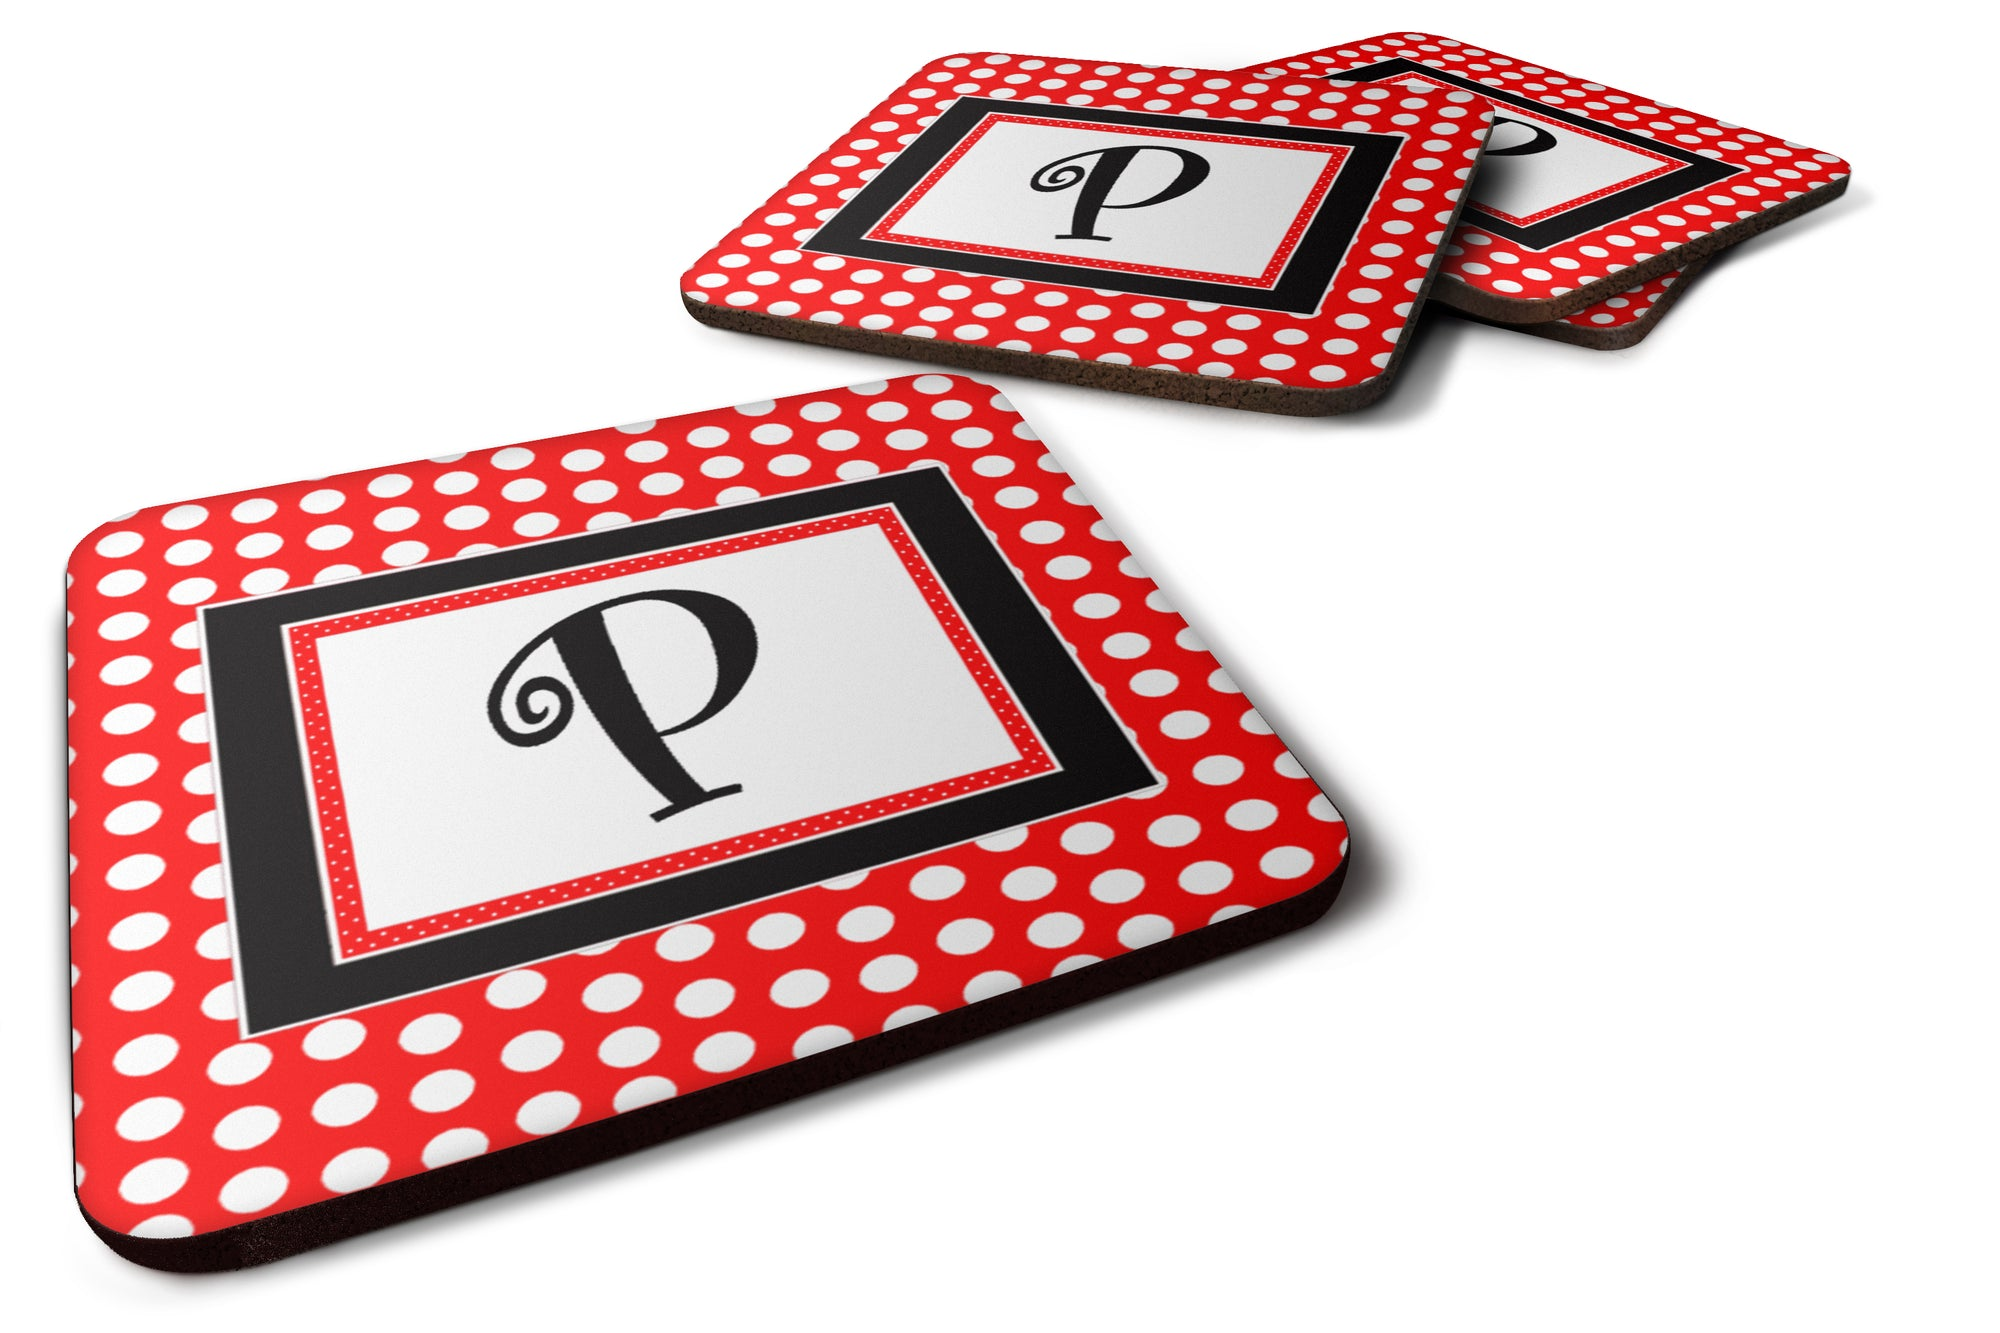 Set of 4 Monogram - Red Black Polka Dots Foam Coasters Initial Letter P by Caroline's Treasures